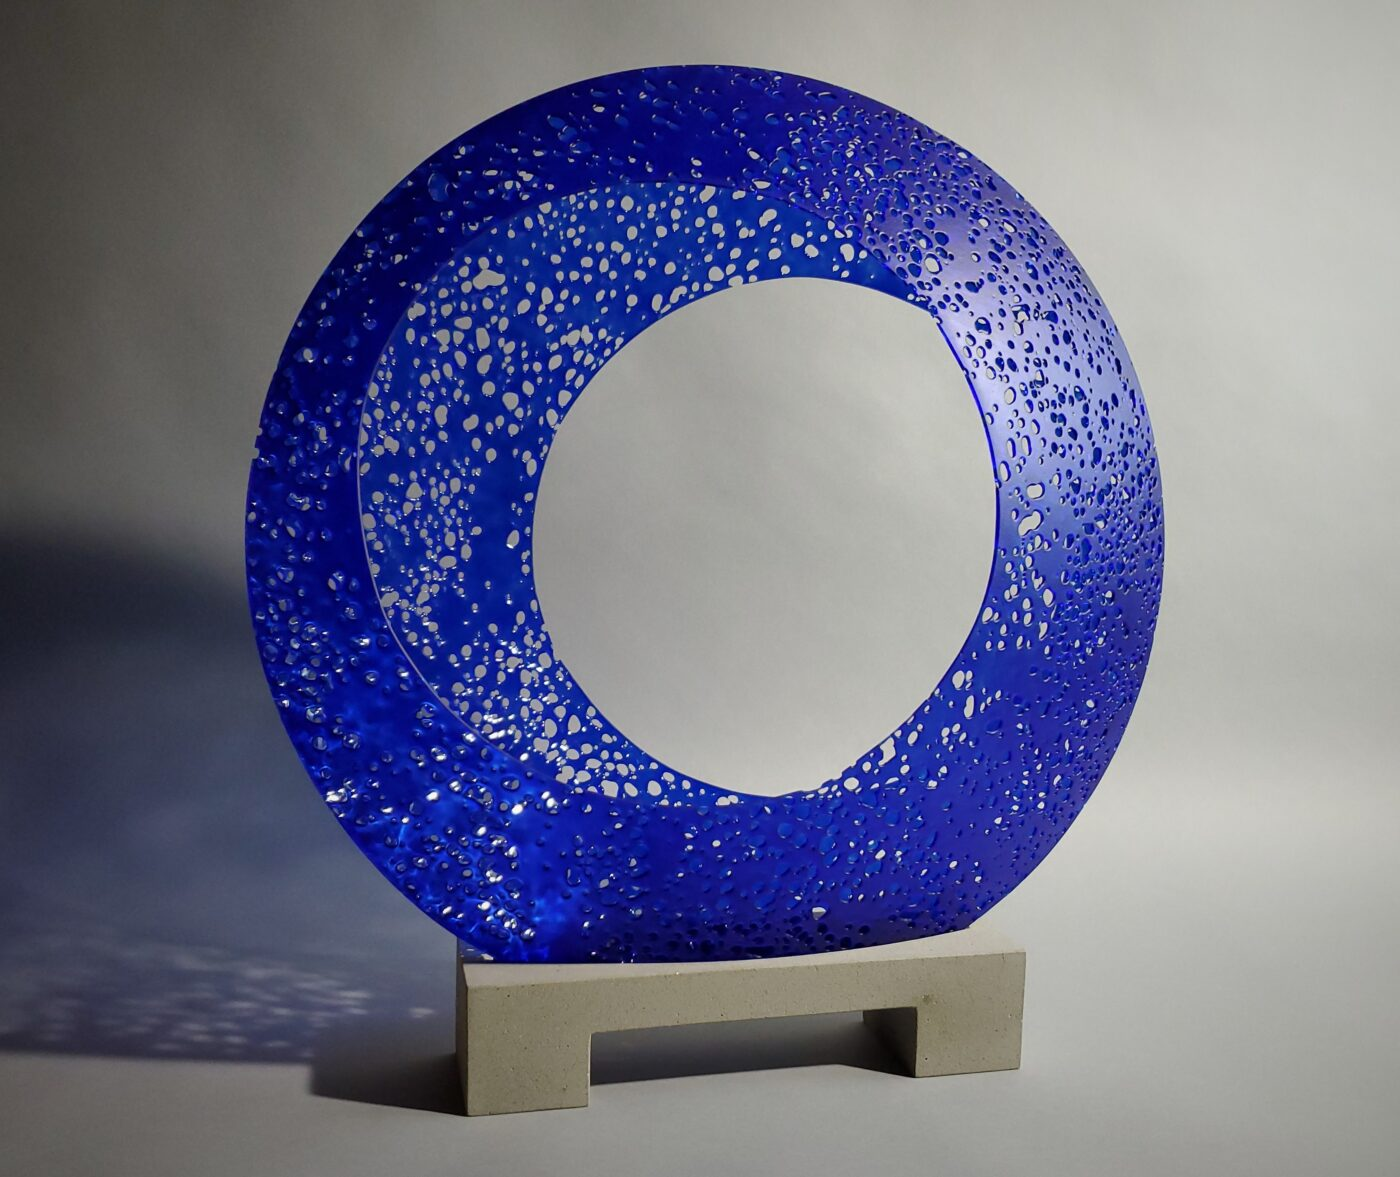 royal blue glass sculpture